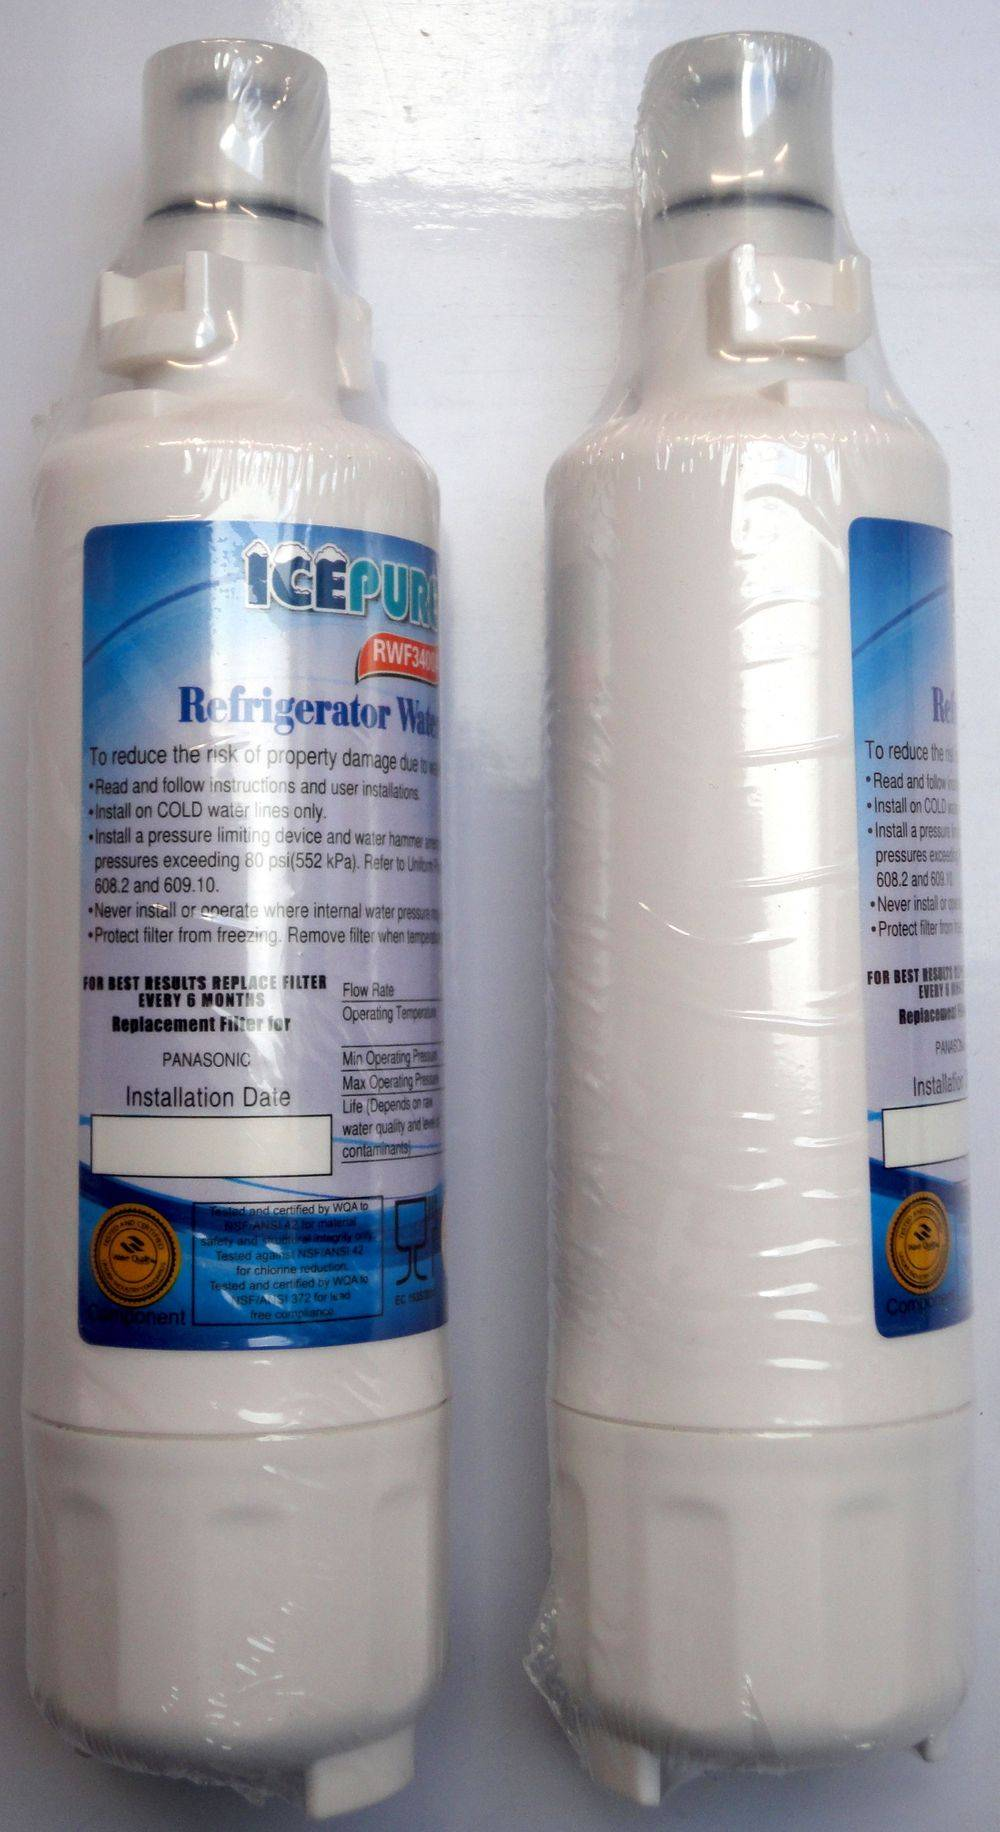 IcePure RWF3400A - RFC3400A for Panasonic - CNRAH-257760 - CNRBH-125950 - replacement refrigerator fridge water filter cartridges - top view - stocked and sold at www.aaafilterfast.co.uk